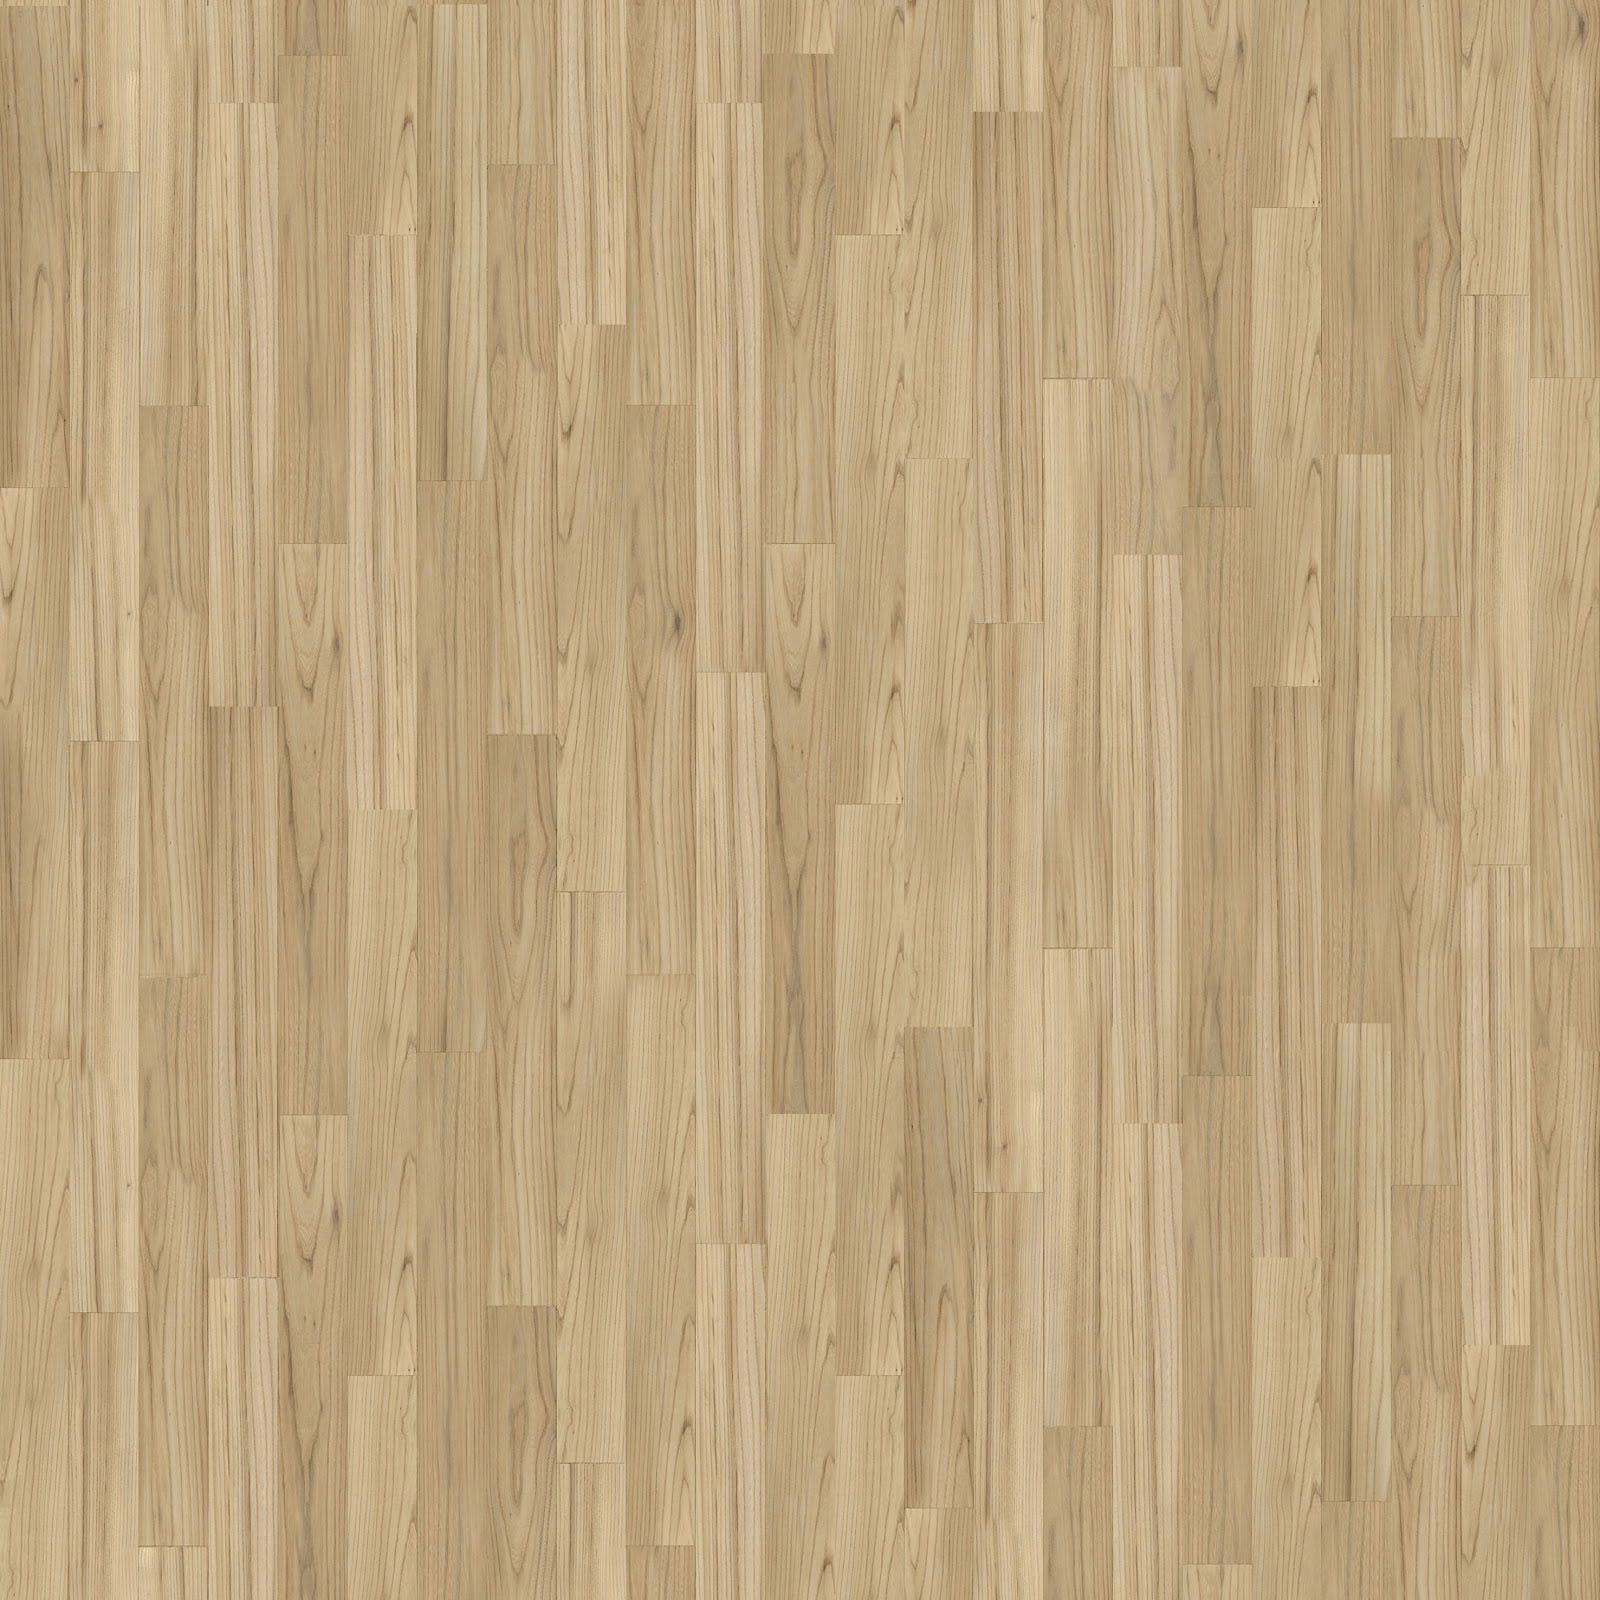 rovere wood parquet maps texturise free seamless textures with maps. Black Bedroom Furniture Sets. Home Design Ideas